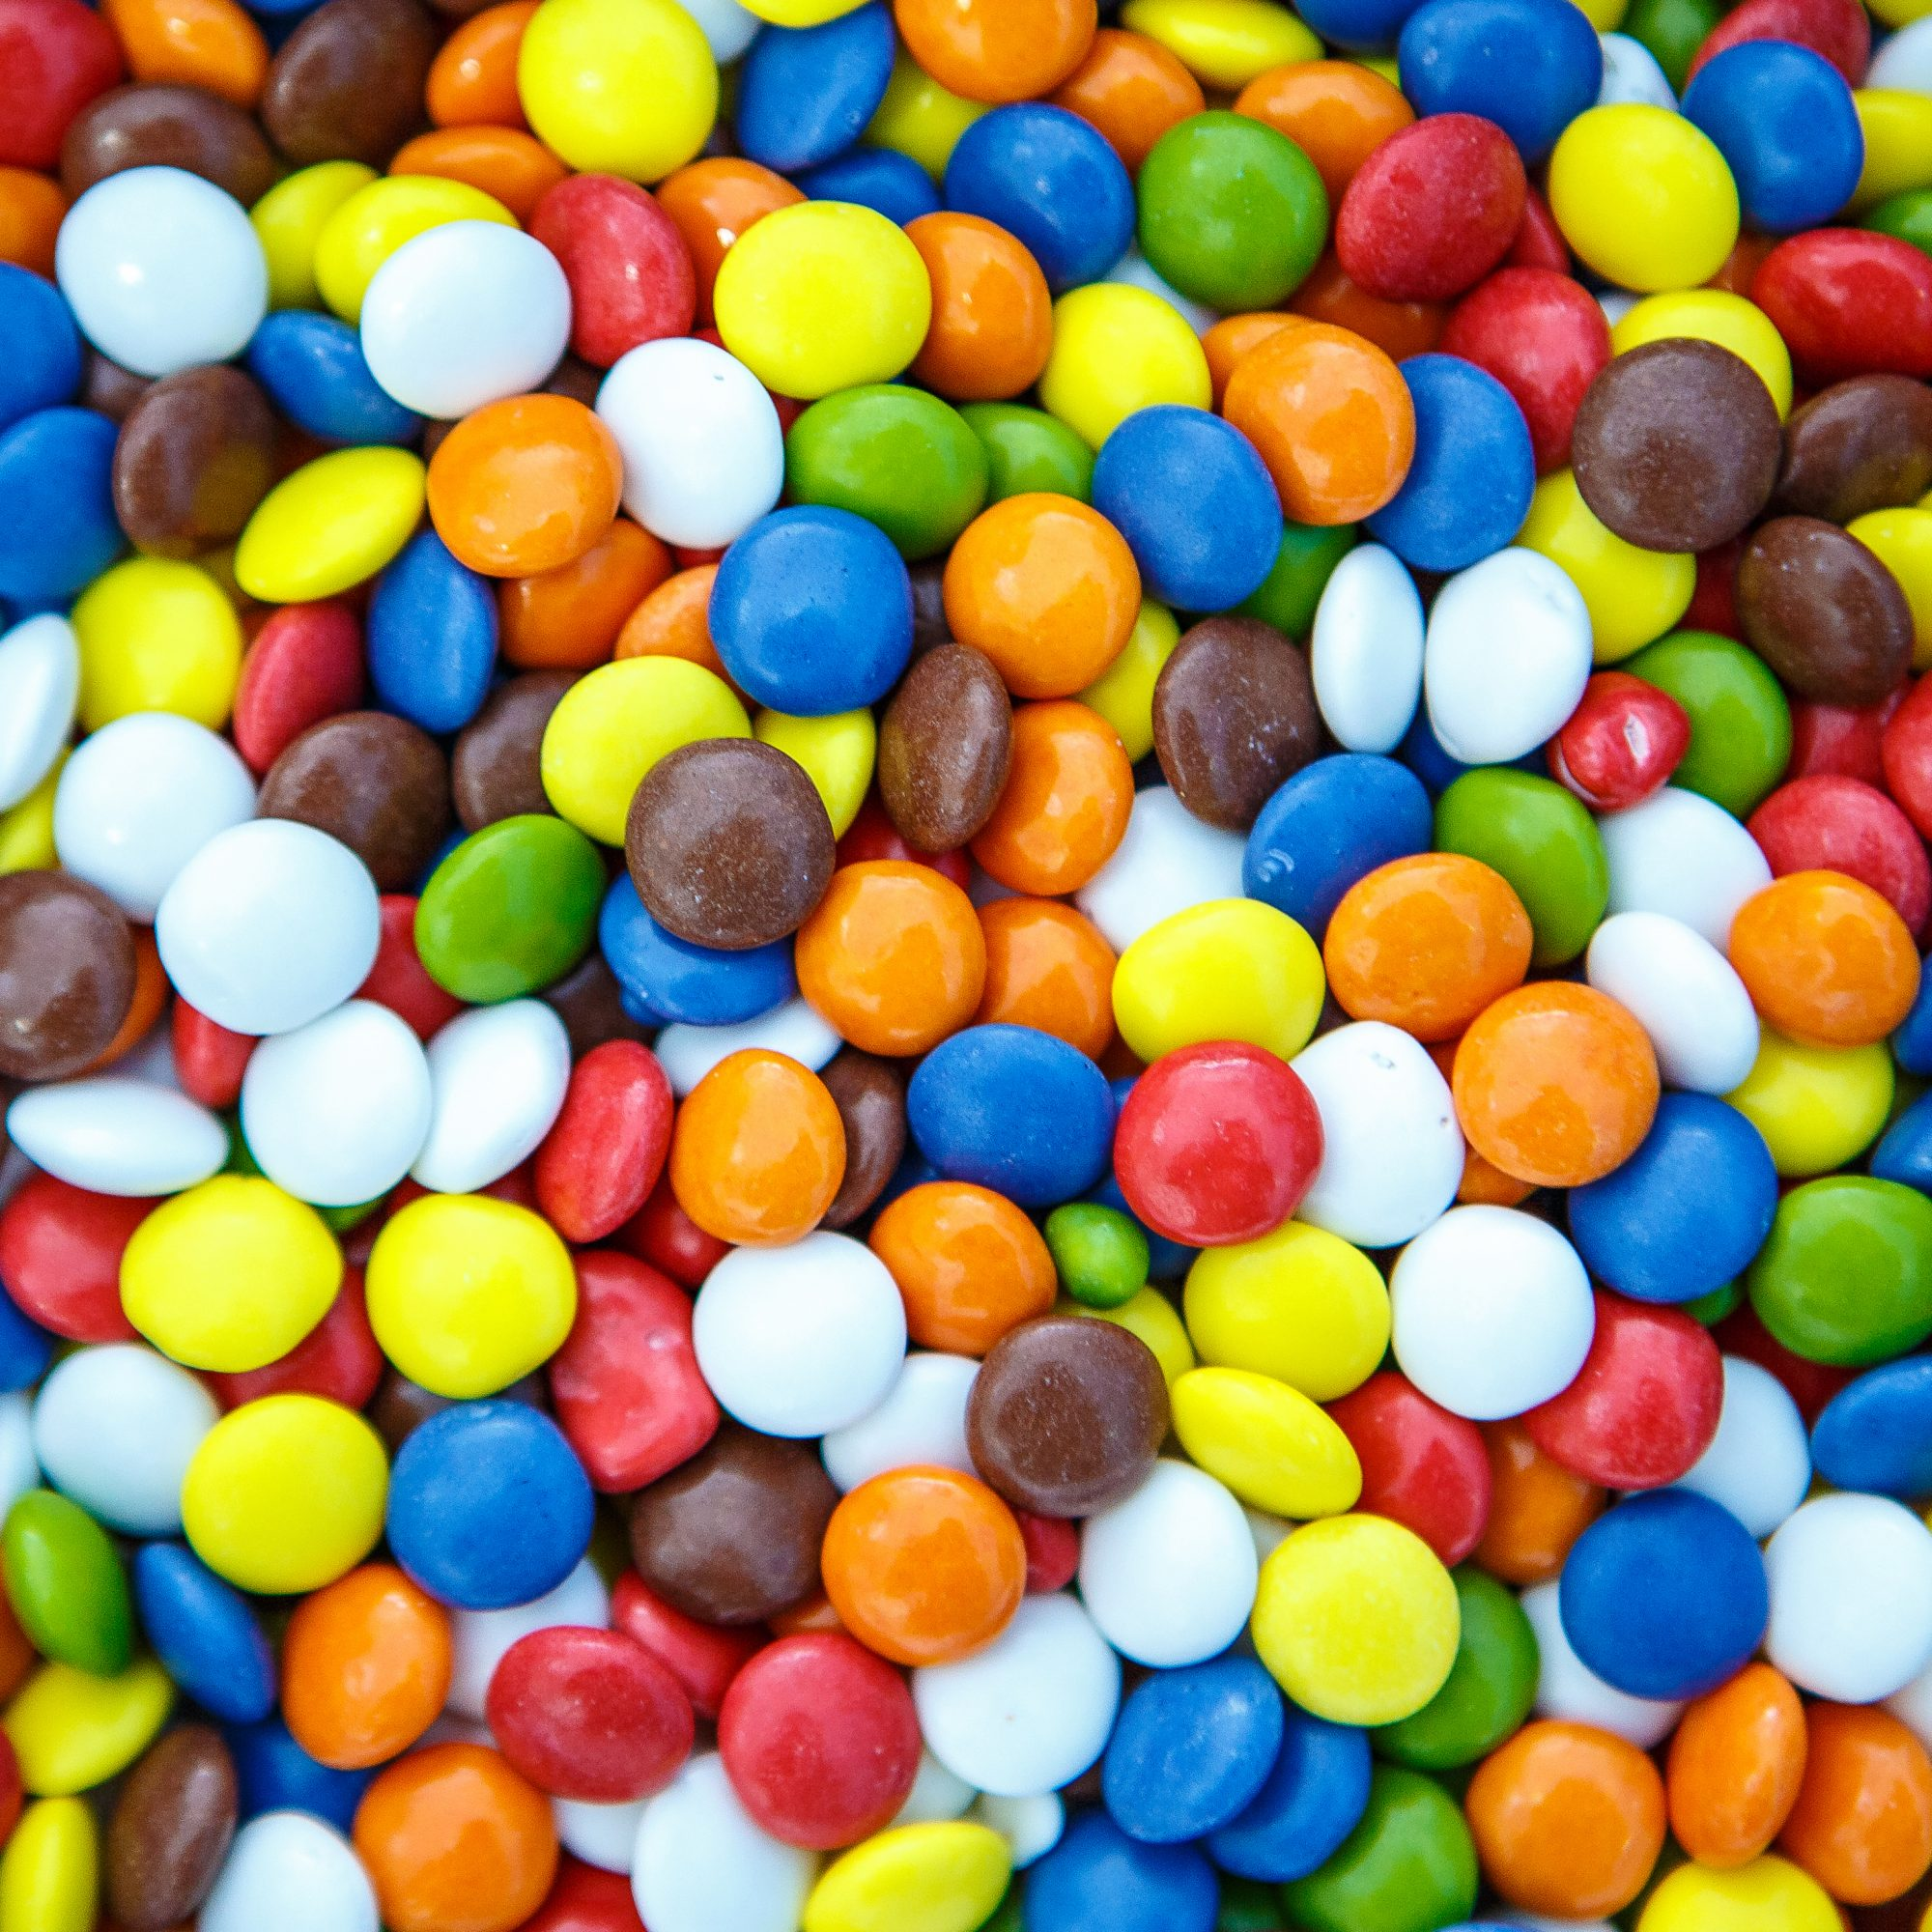 Oops, It Looks Like the Newest M&M's Flavor Hit Shelves Way Too Early